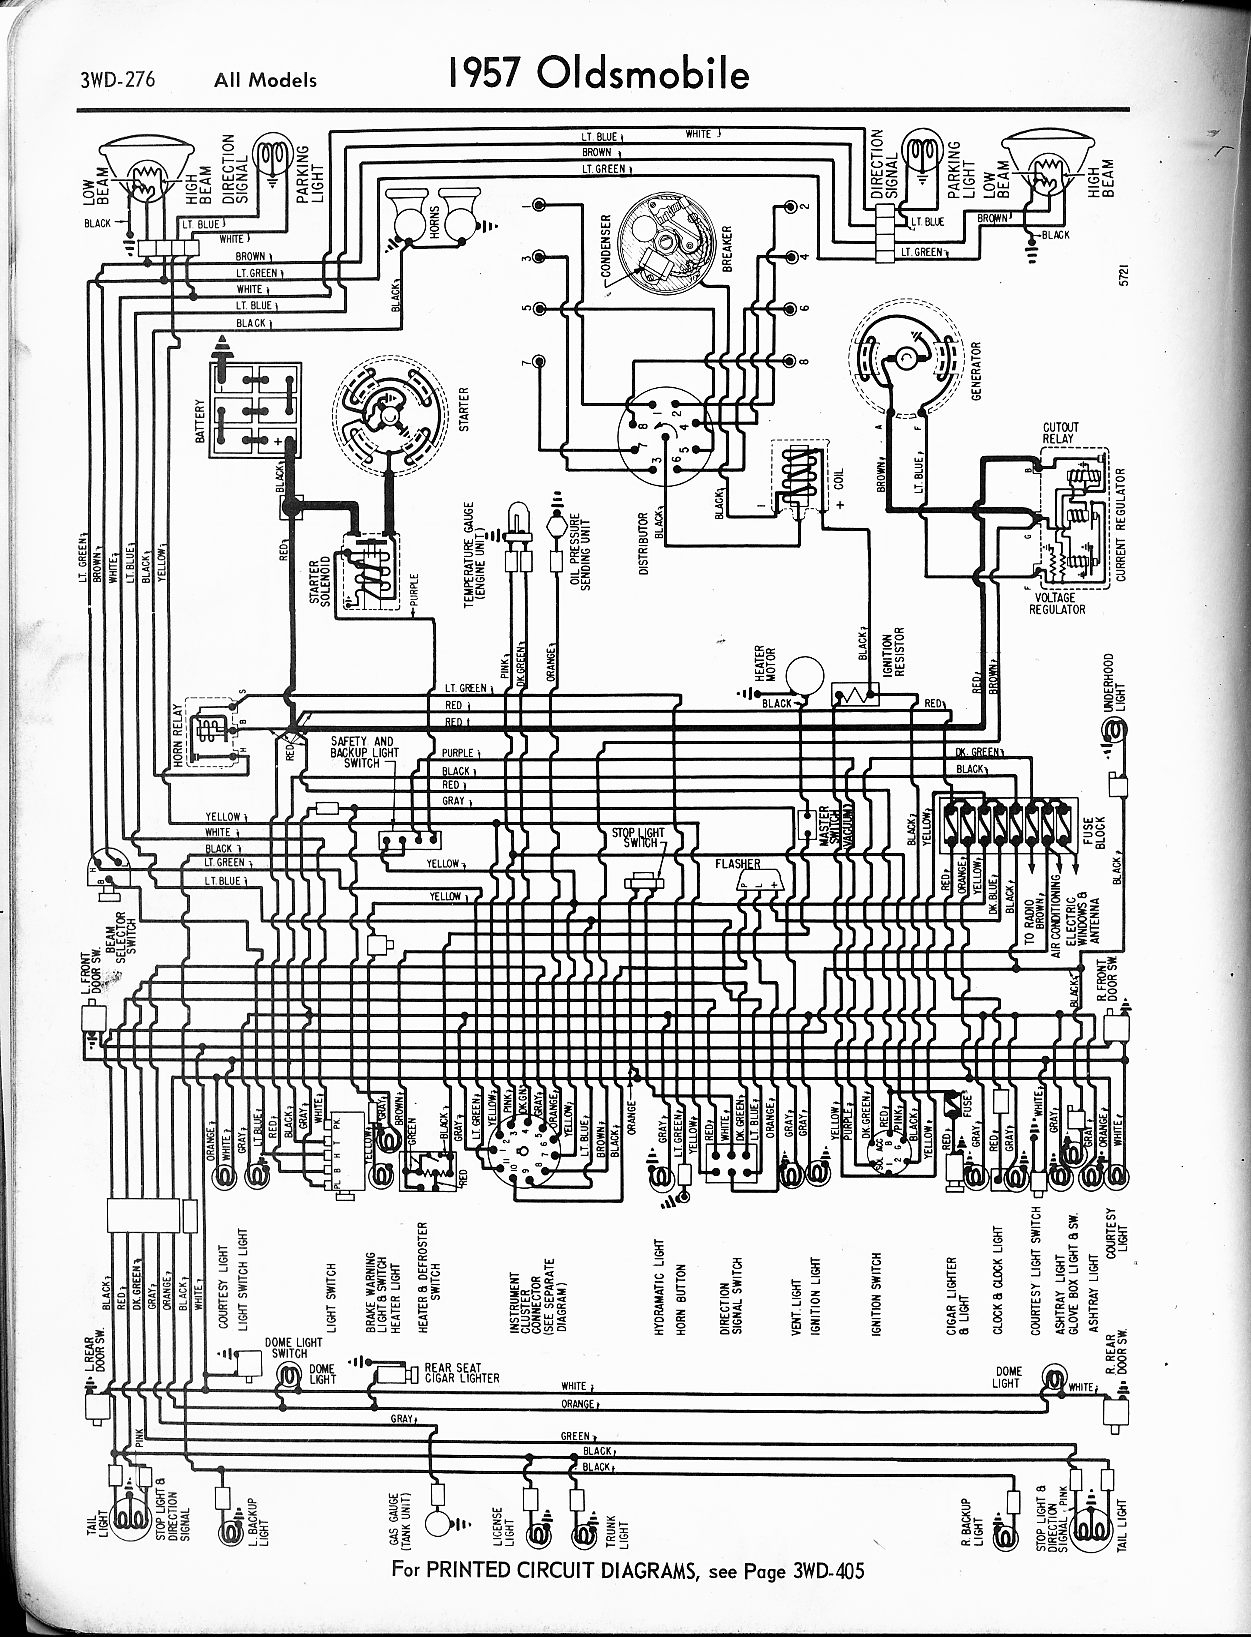 ezgo wiring diagram for 98 cruise control wiring diagram for 98 buick 98 ez go wiring diagram download